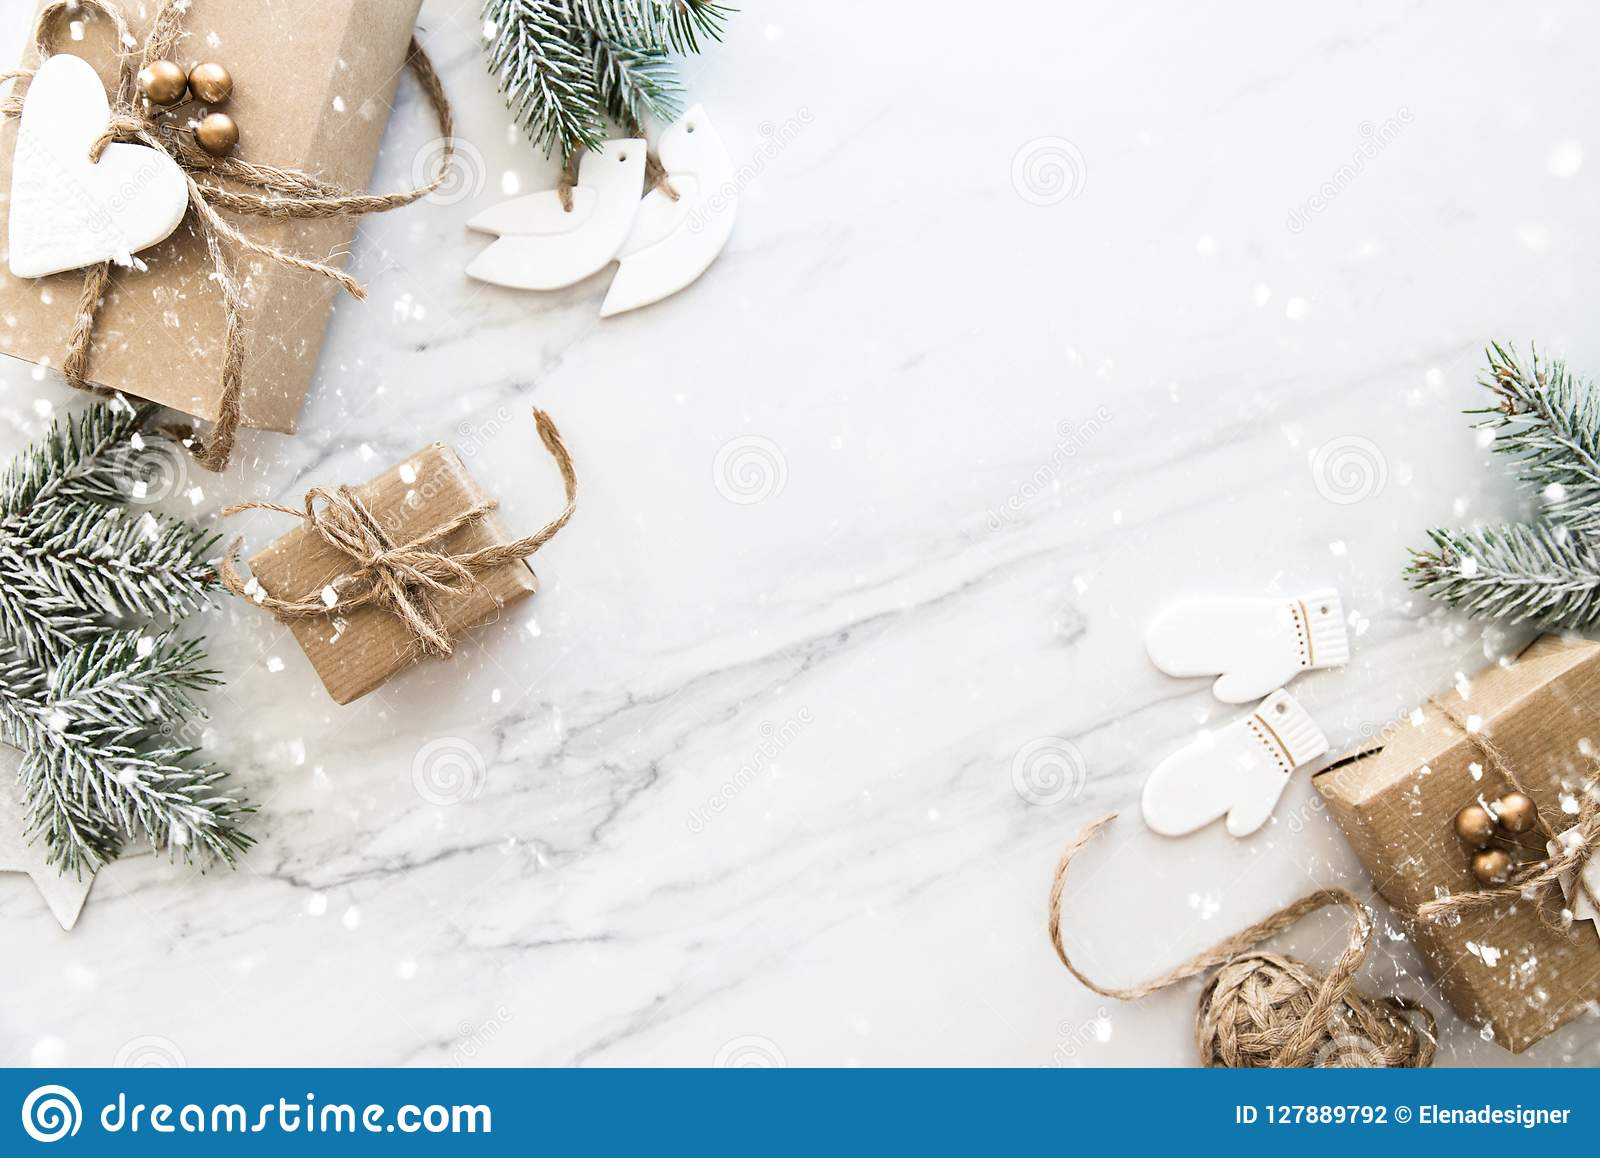 Merry Christmas Background.Christmas Handmade Gift Boxes On White Marble Background Top